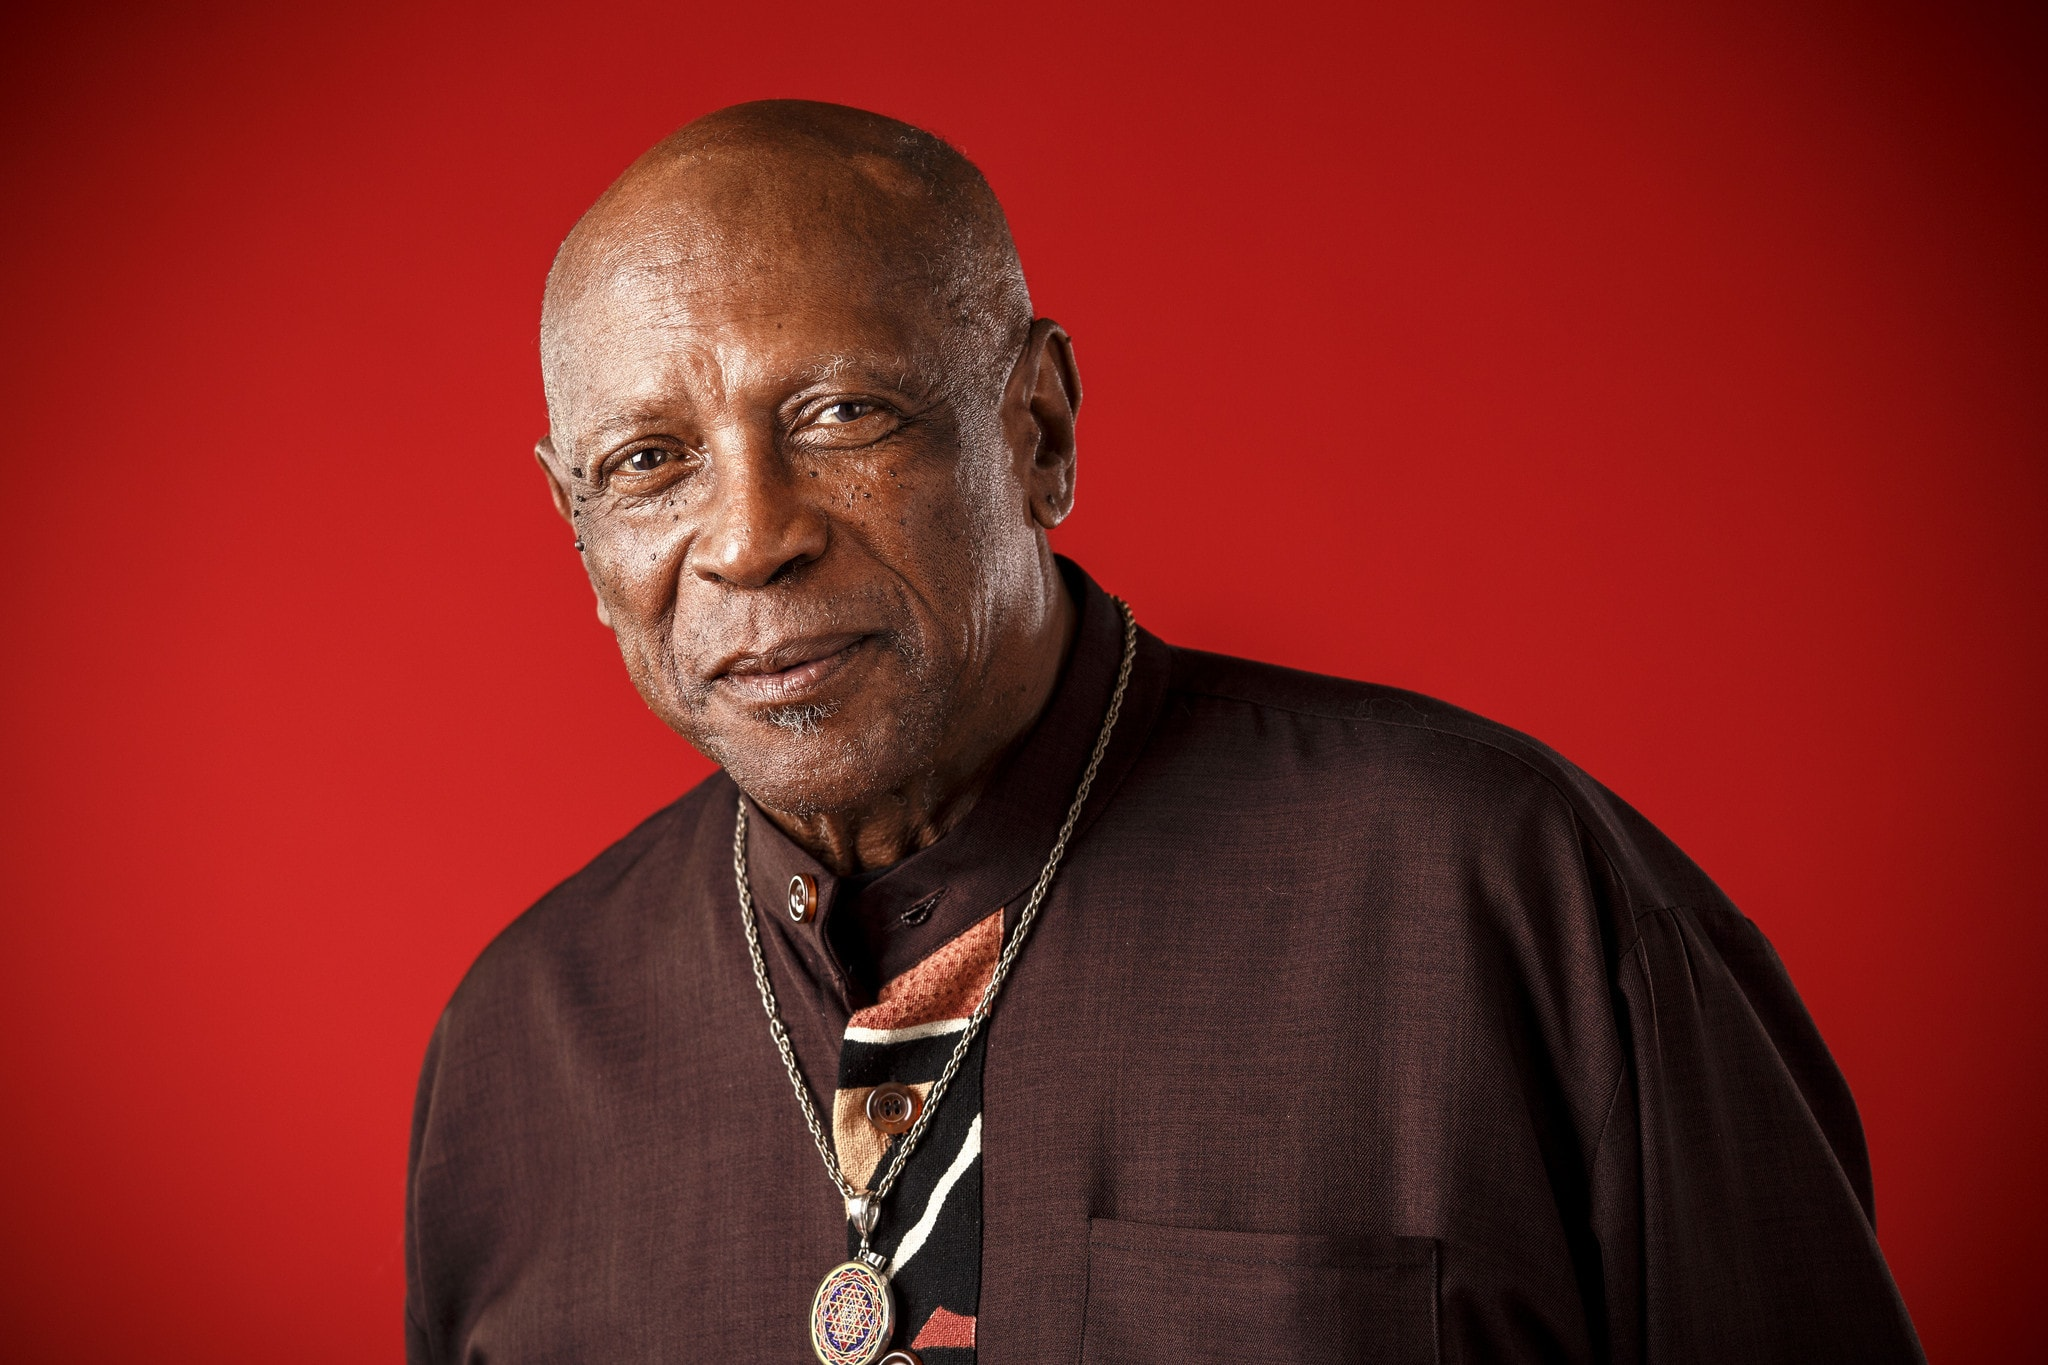 Louis Gossett Jr. Full hd wallpapers